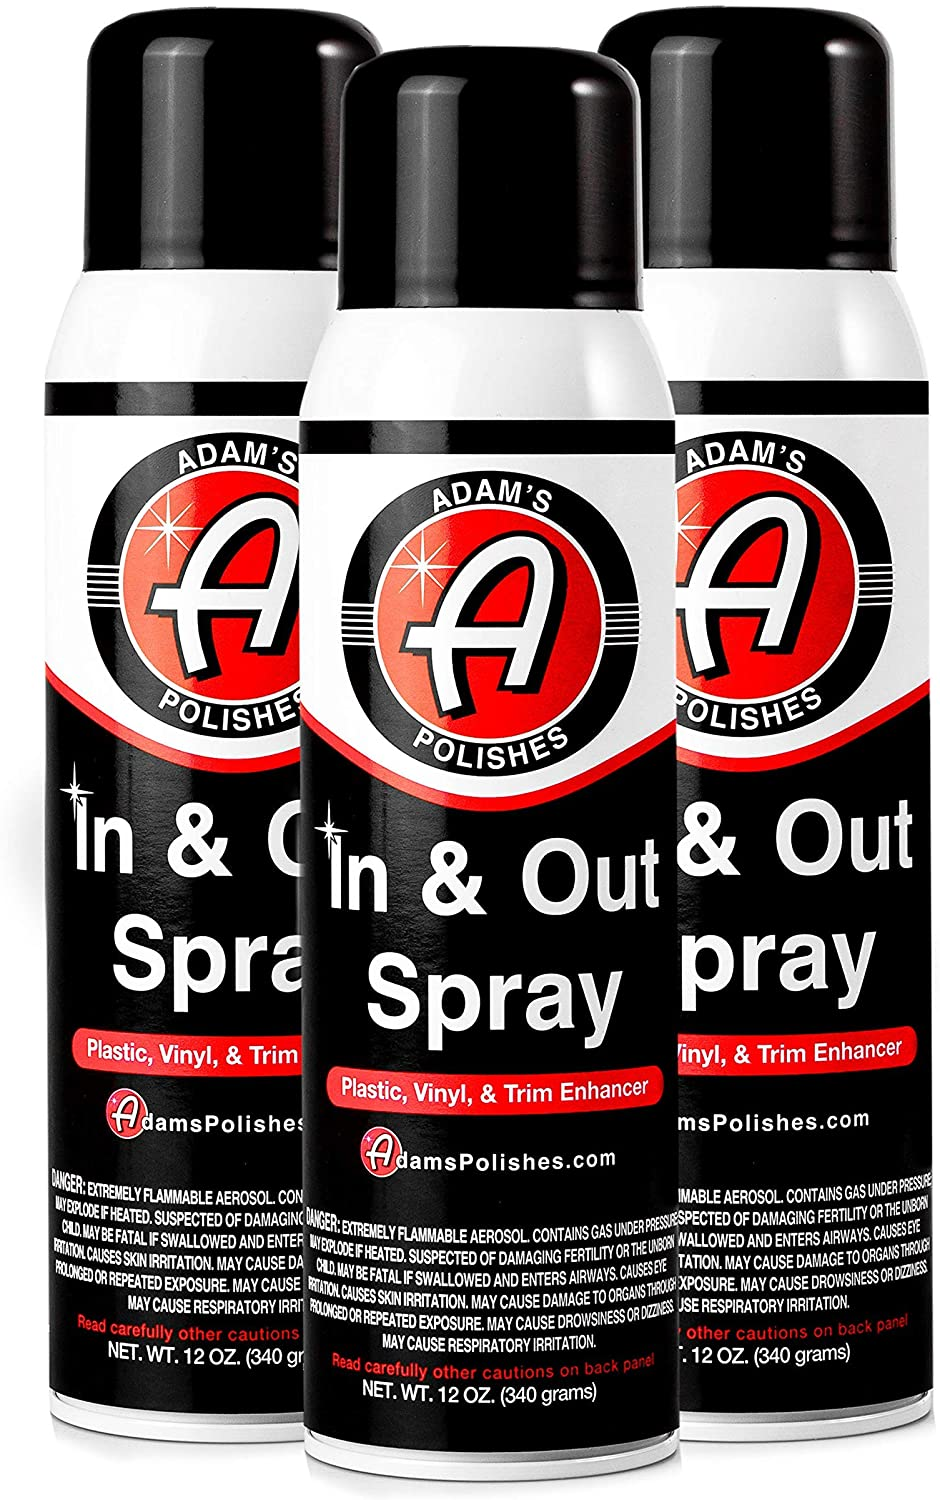 Adam's in and Out Spray - Ultimate Solution for Dressing Those Hard to Reach Areas Around Your Car - Dark, Rich, Longer Lasting Shine (3 Pack)